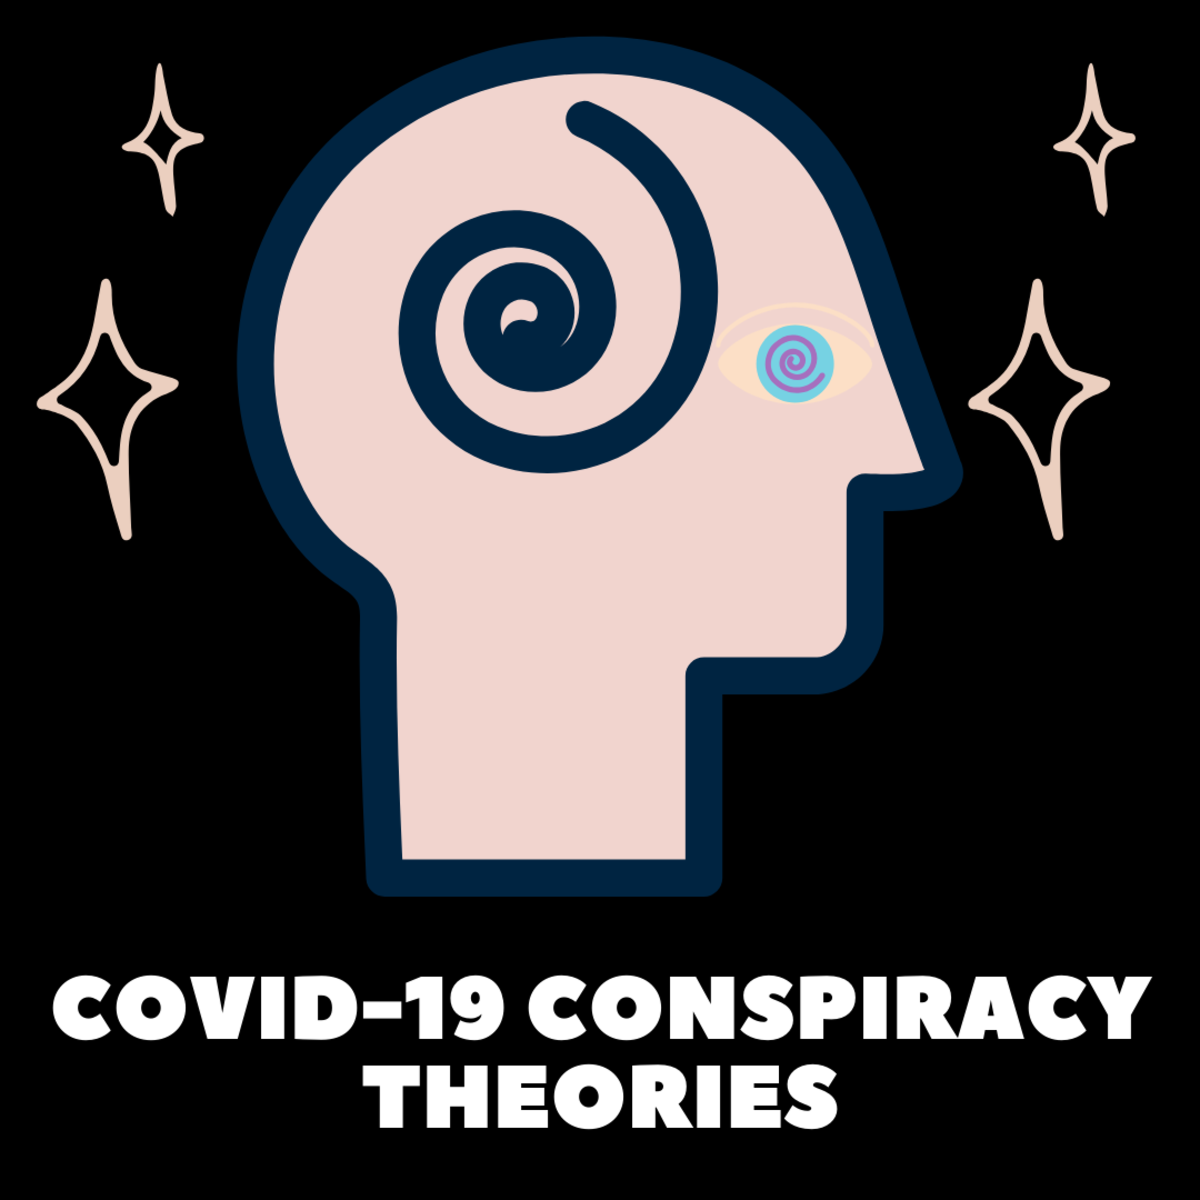 These preposterous conspiracies are truly ridiculous, but they sure are fun to read about.